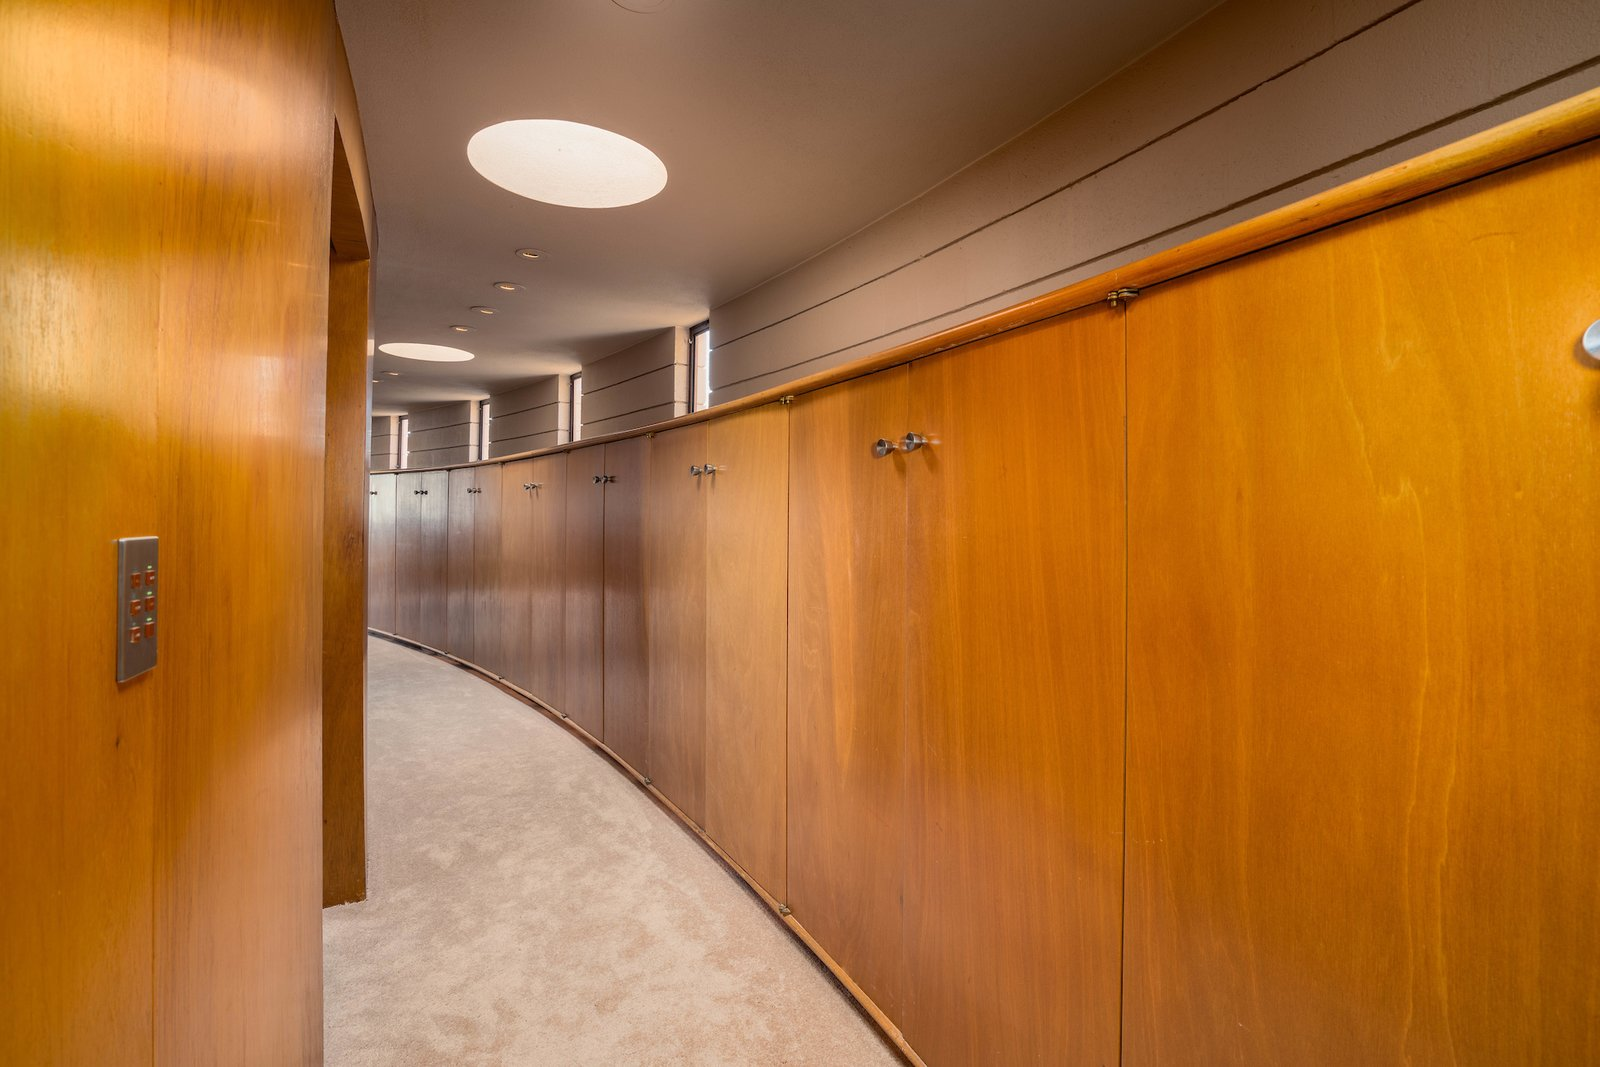 Hallway and Carpet Floor  Photo 11 of 15 in The Last House Designed by Frank Lloyd Wright Hits the Market at $3.25M